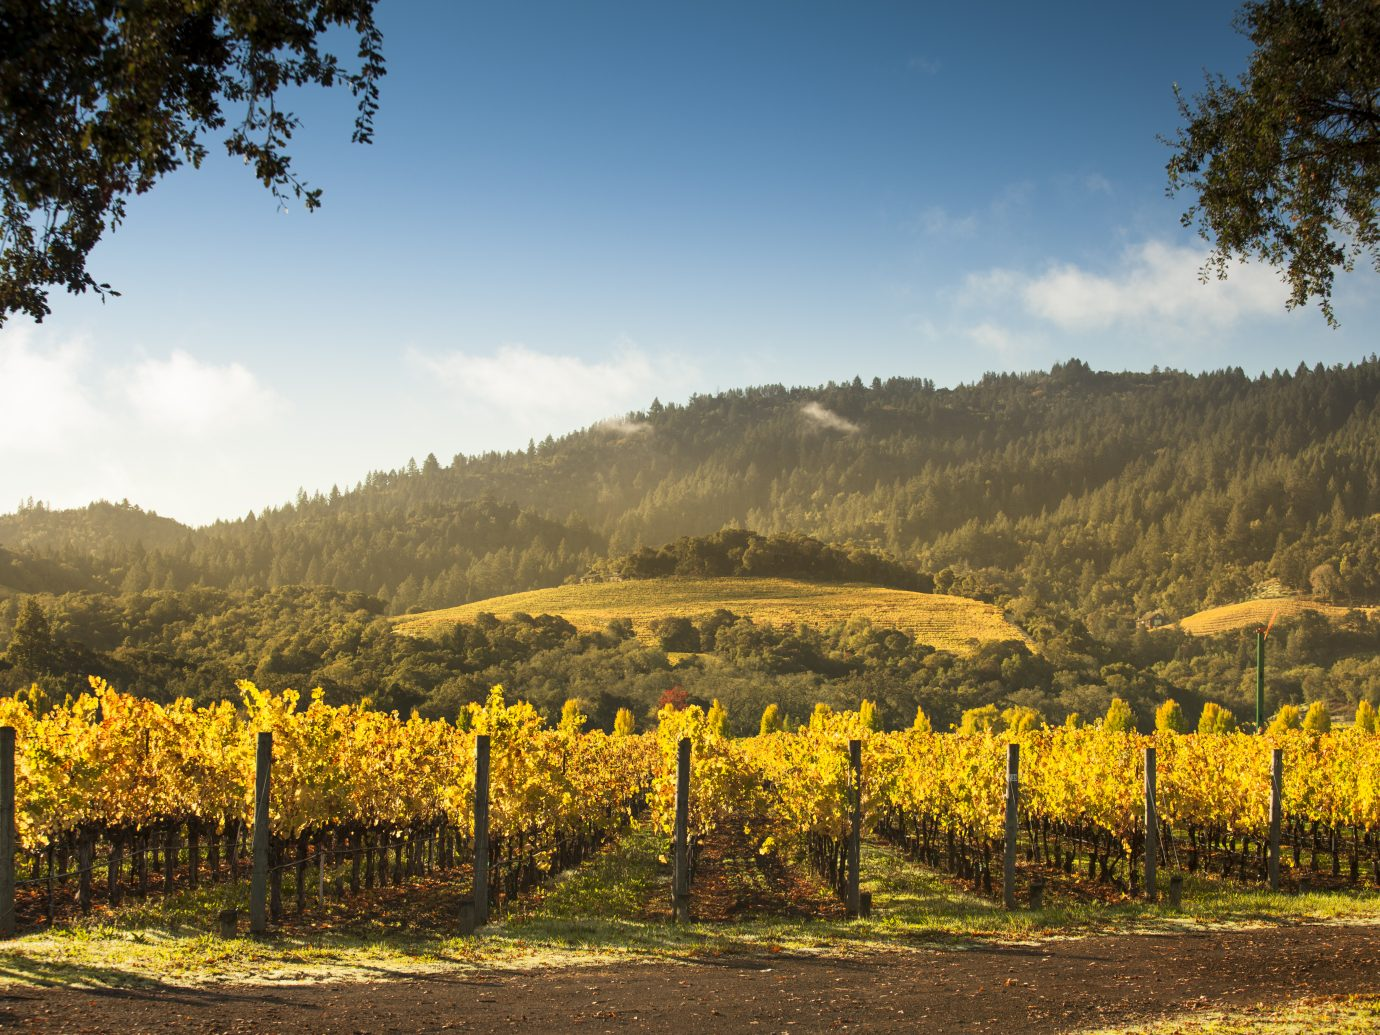 Vineyard field and ripe grape crops in wine country